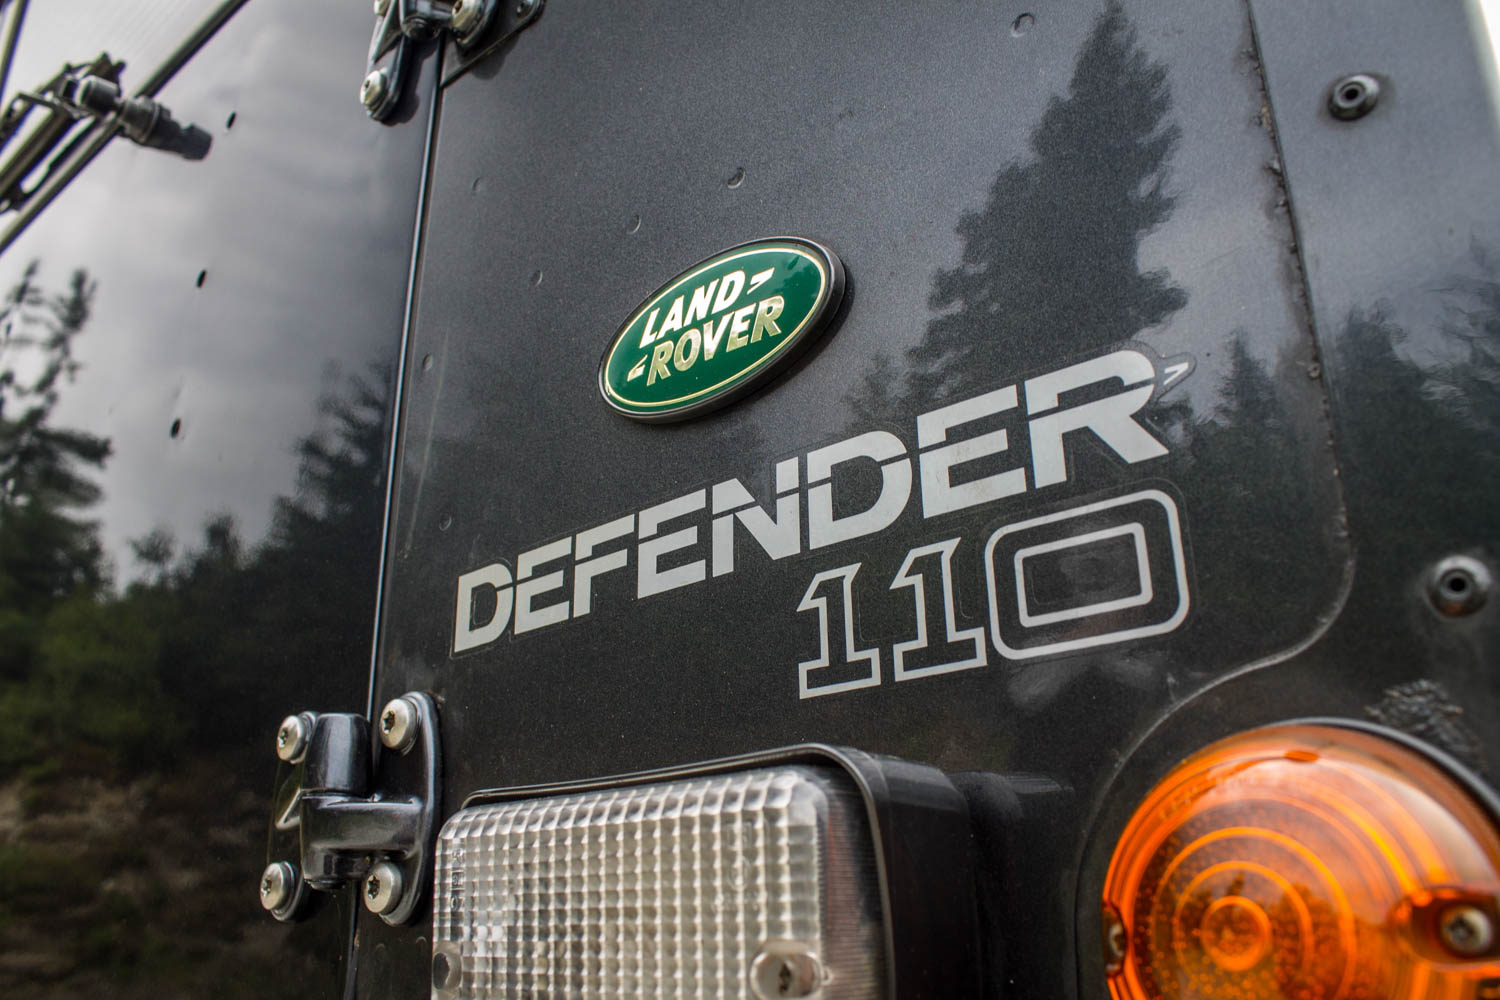 Land Rover Defender 110 TD5 badge